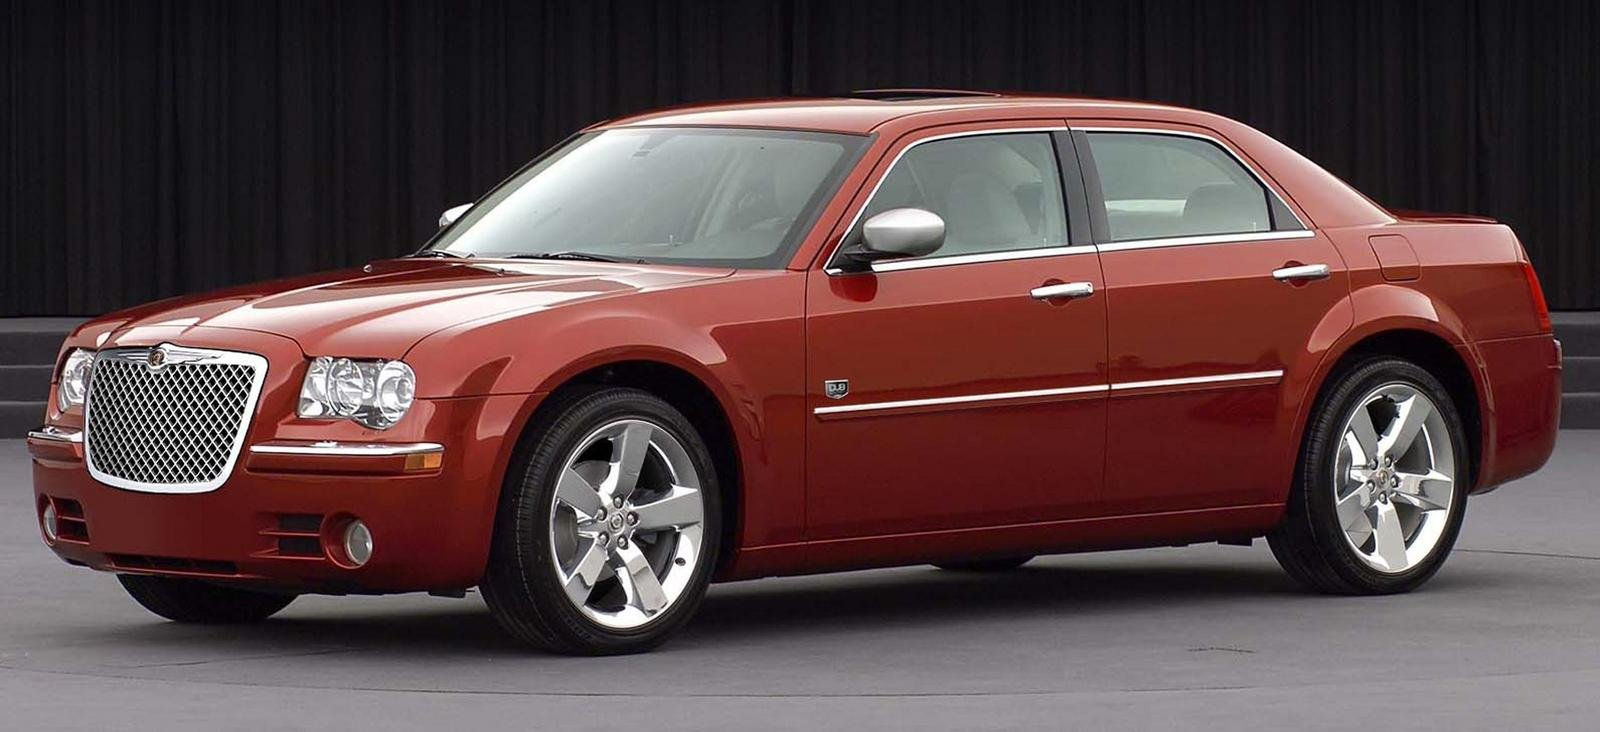 2008 Chrysler 300 And Dodge Charger Dub Edition Review